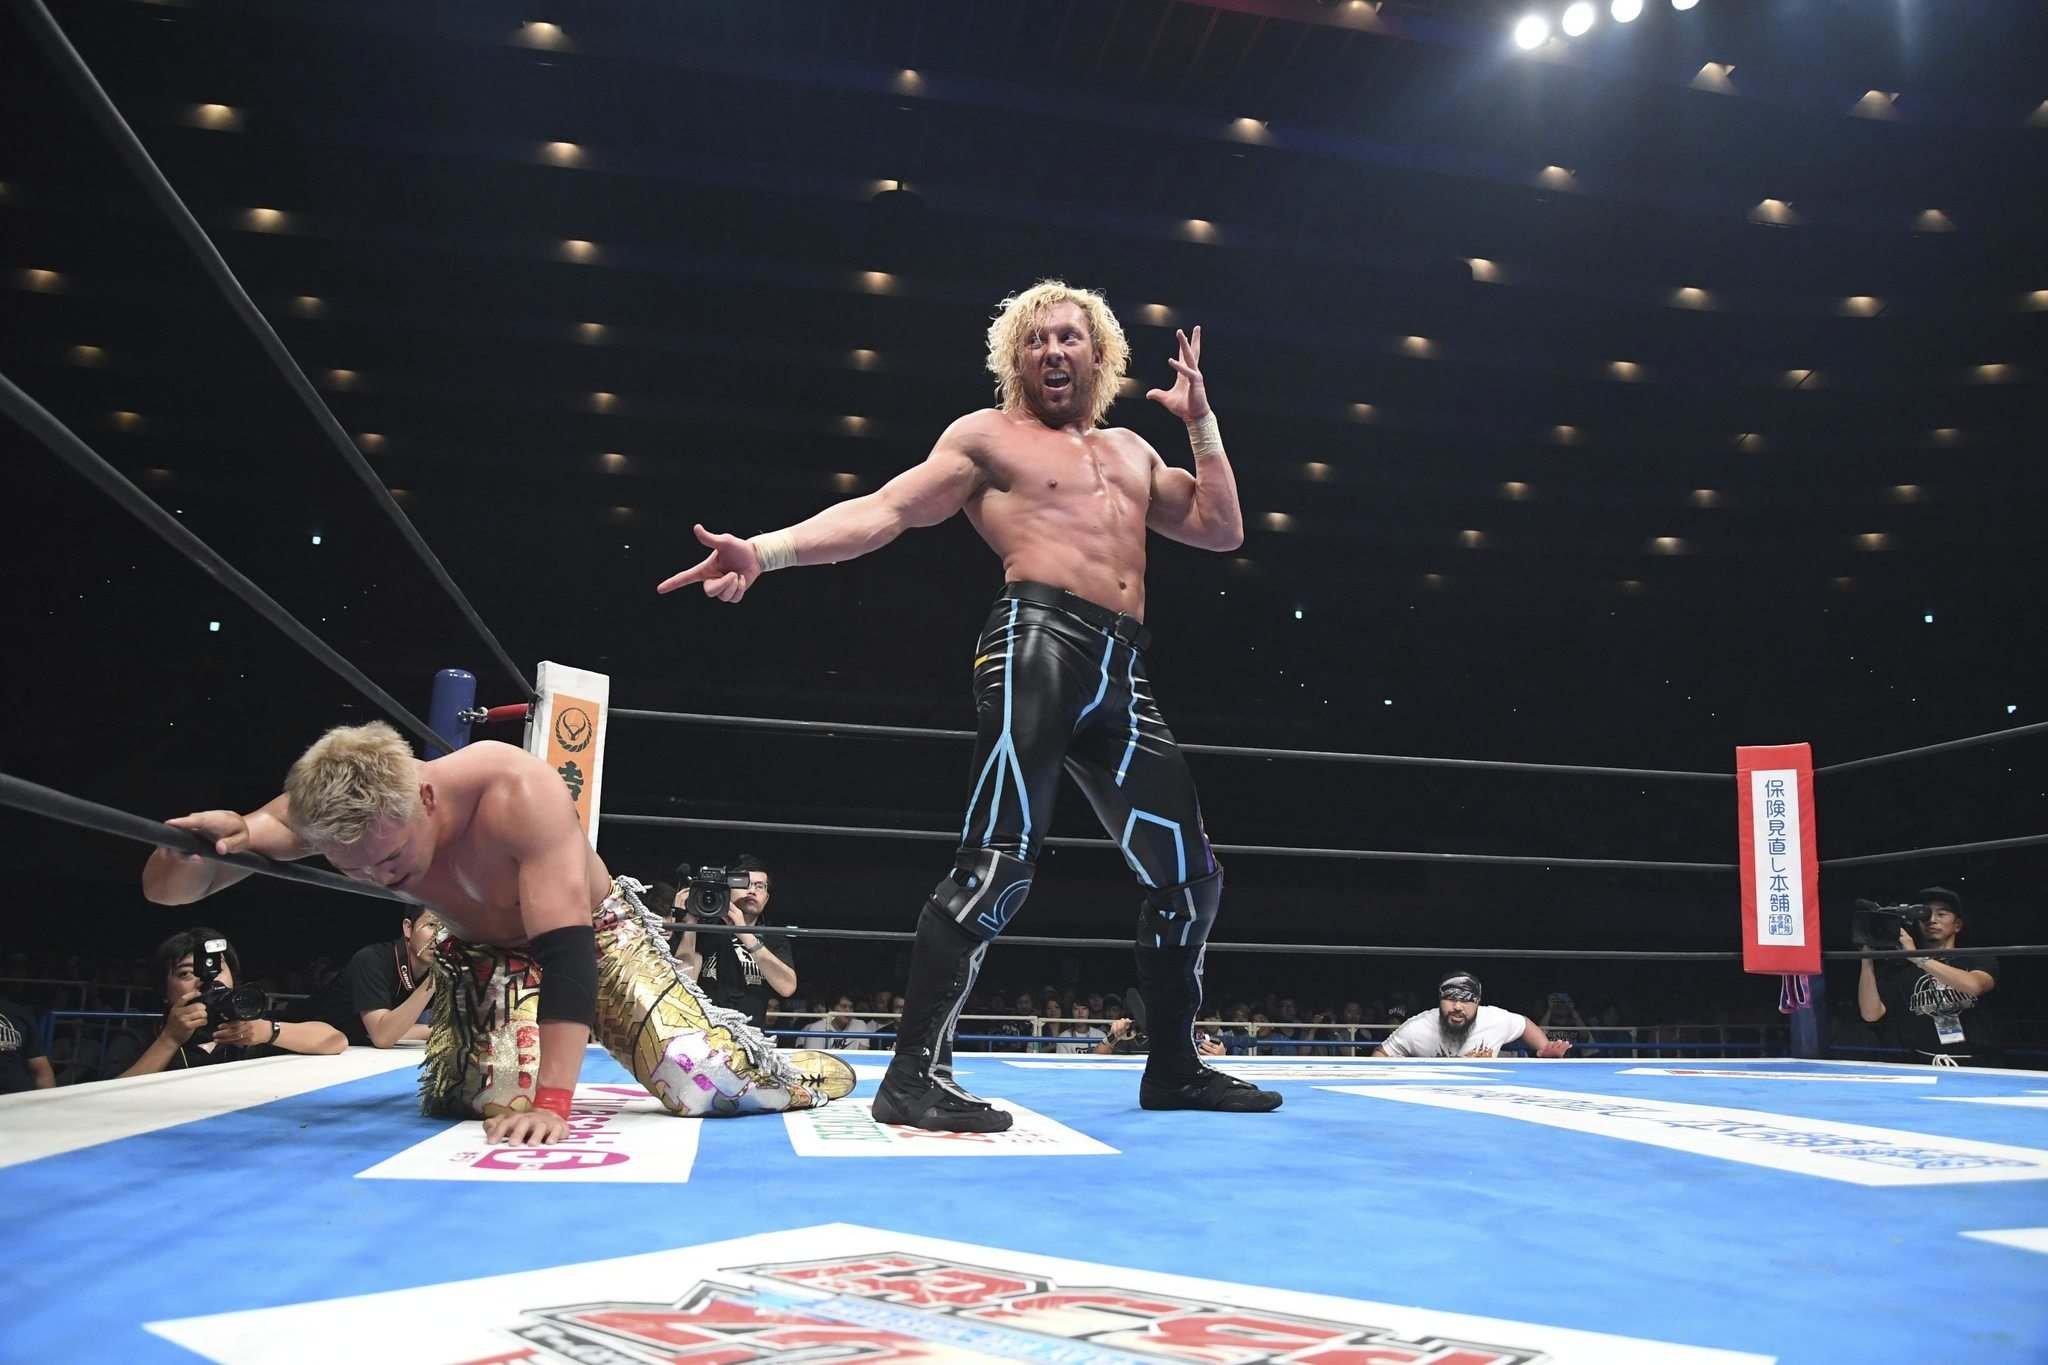 Winnipeg's Kenny Omega made history by winning the IWGP heavyweight championshi against Kazuchika Okada, a two-out-of-three-falls match that lasted nearly 70 minutes. It is being regarded by many as the greatest pro wrestling match of all time. (TV ASAHI NJPW, AXS TV)</p></p>